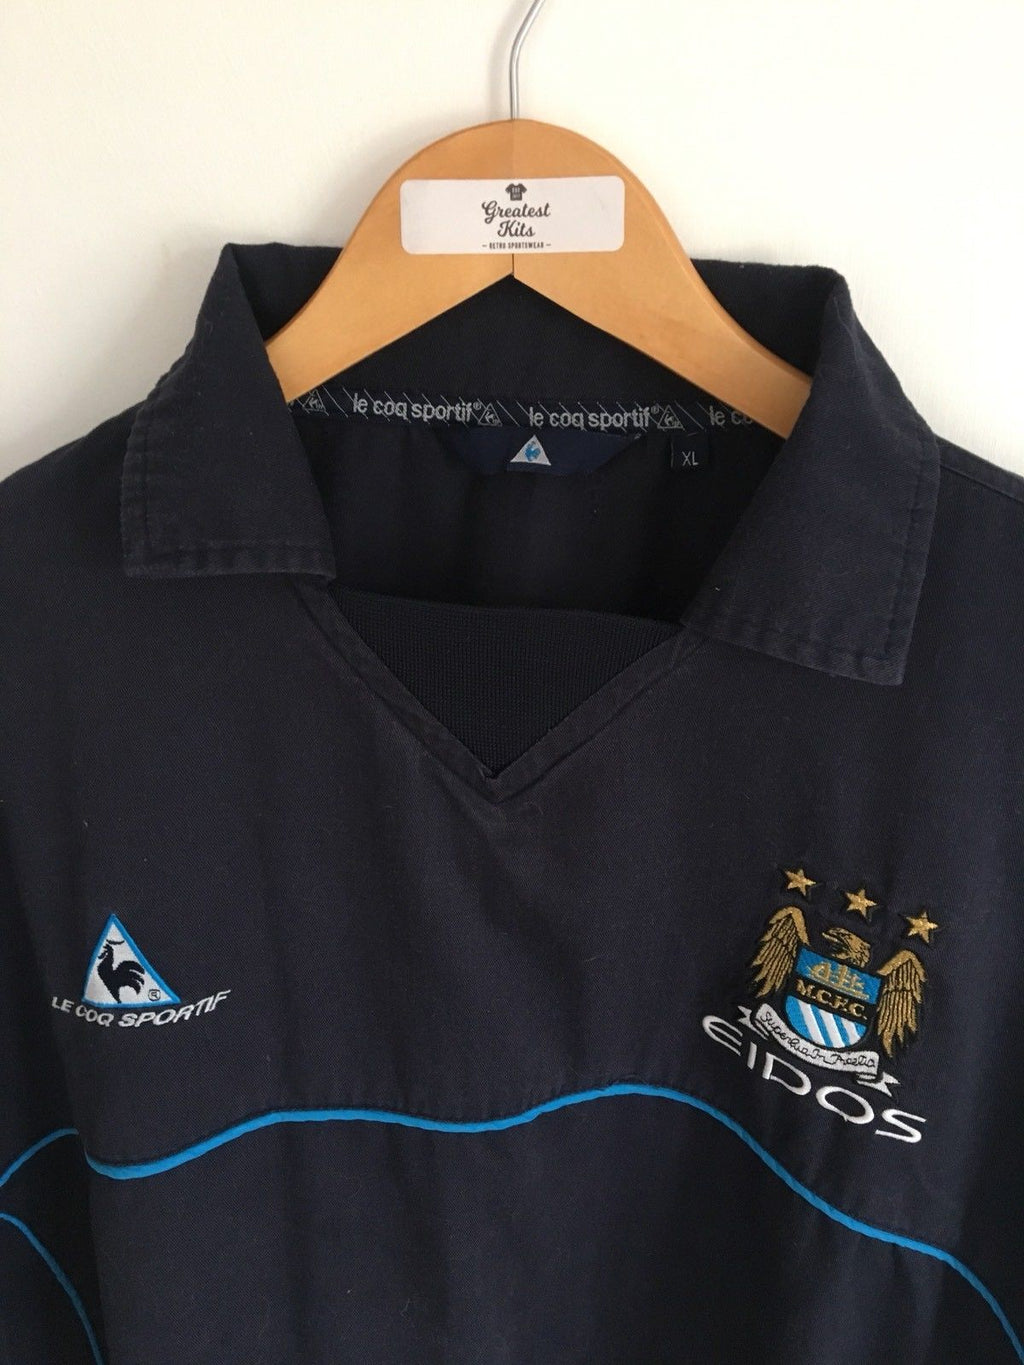 1999/01 Manchester City Drill Top (XL) 8.5/10